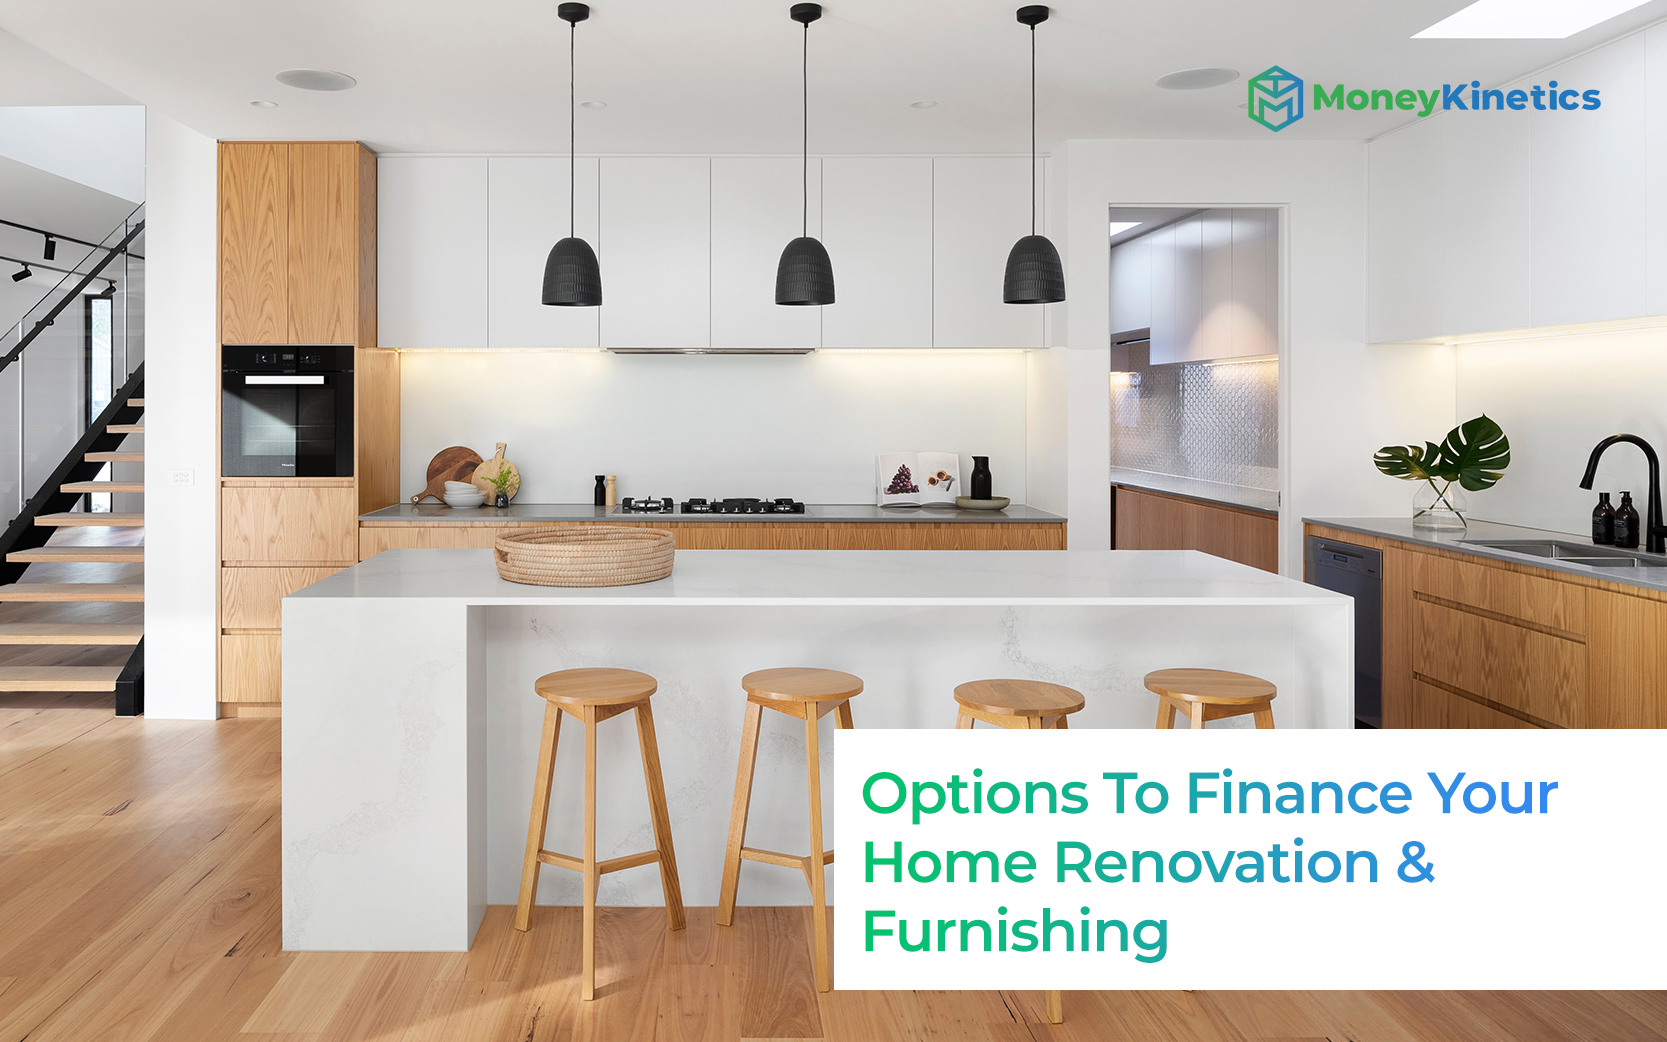 What-Are-The-Options-To-Finance-Your-Home-Renovation-&-Furnishing-Money-Kinetics